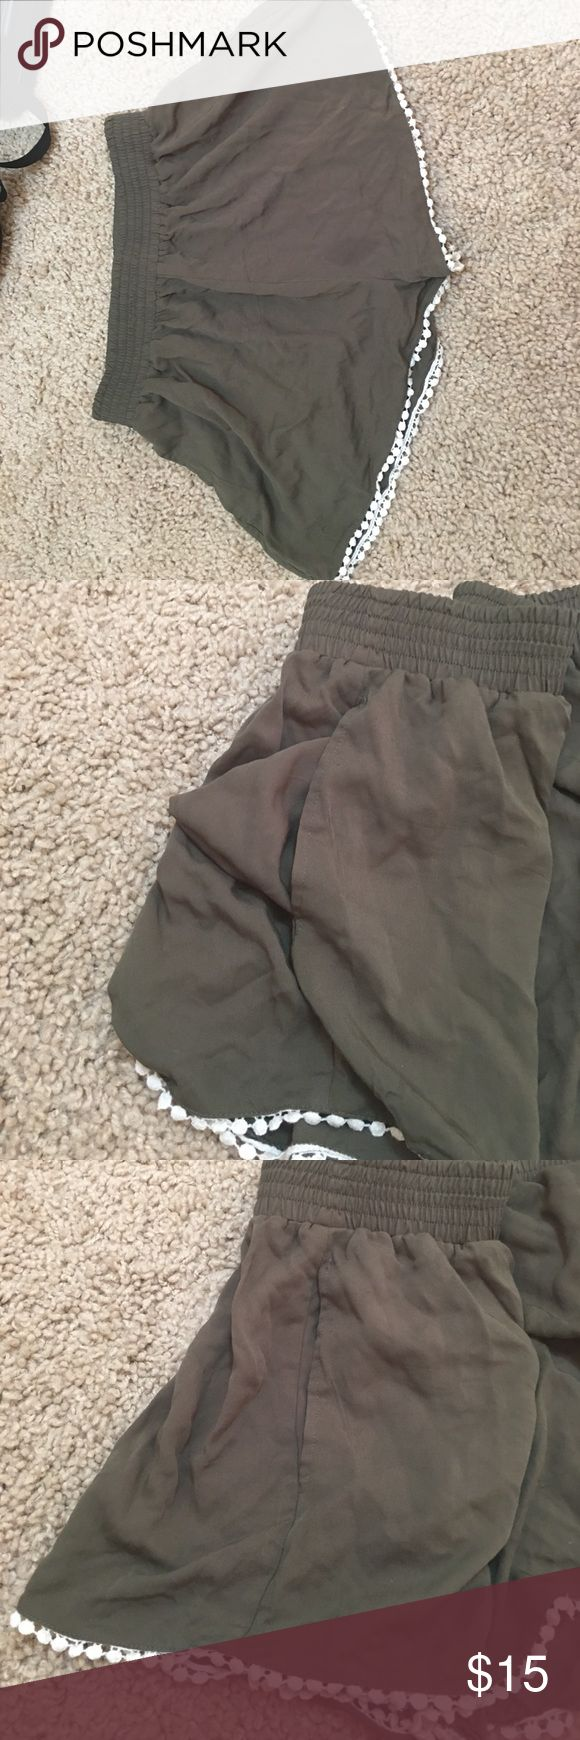 Army green shorts These are army green shorts with a white ball like trim that goes along the whole base of the shorts. They have pockets and are lightly worn. They are really soft and comfortable and fit well. MINKPINK Shorts